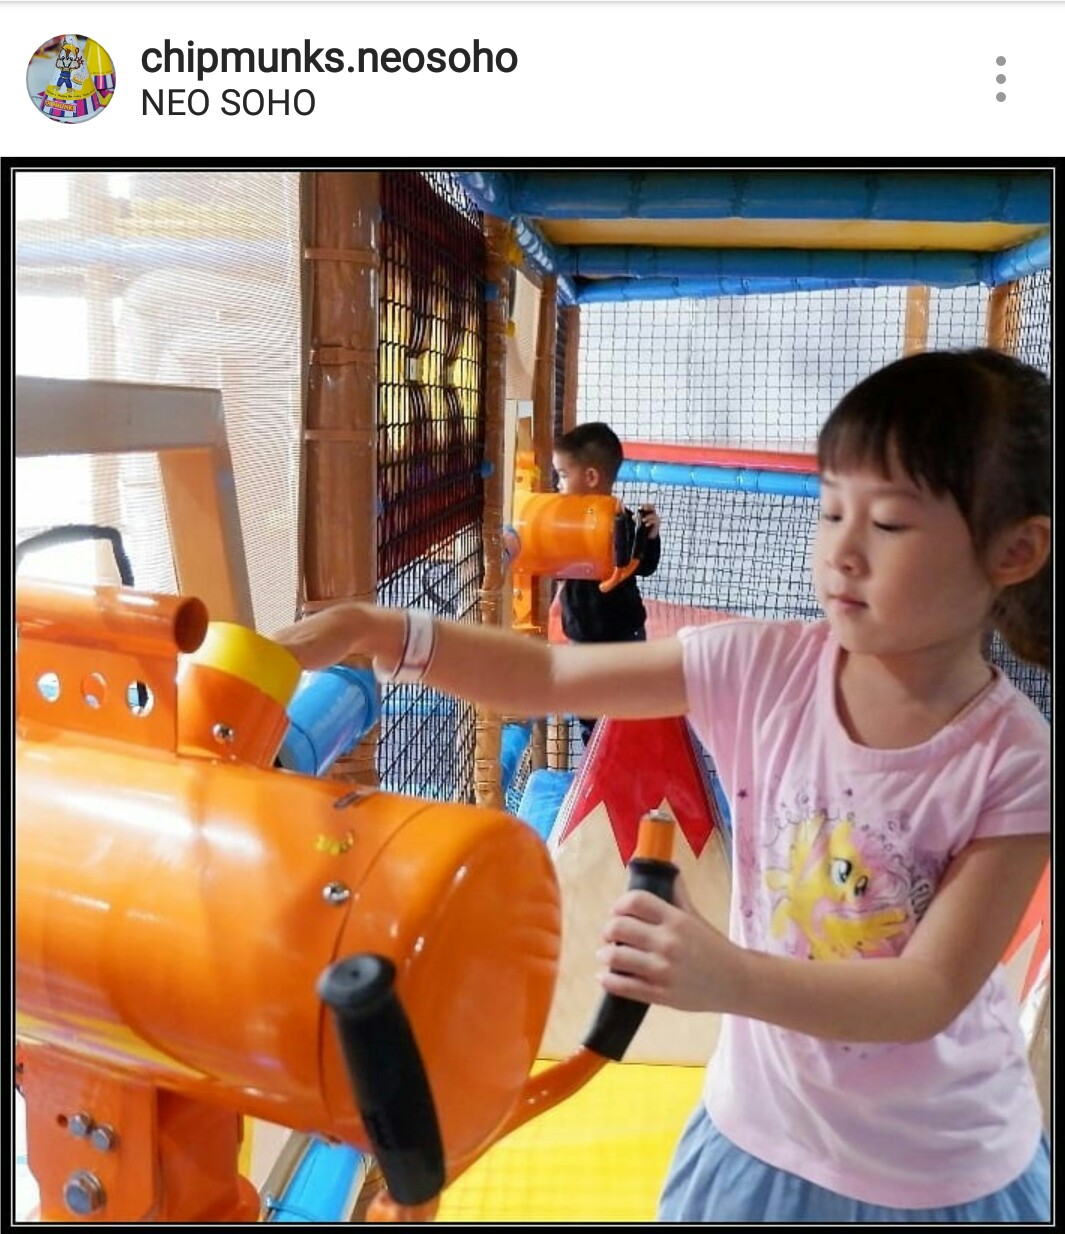 Neo Soho Official Website: Chipmunks Playland And Cafe Neo Soho Mall